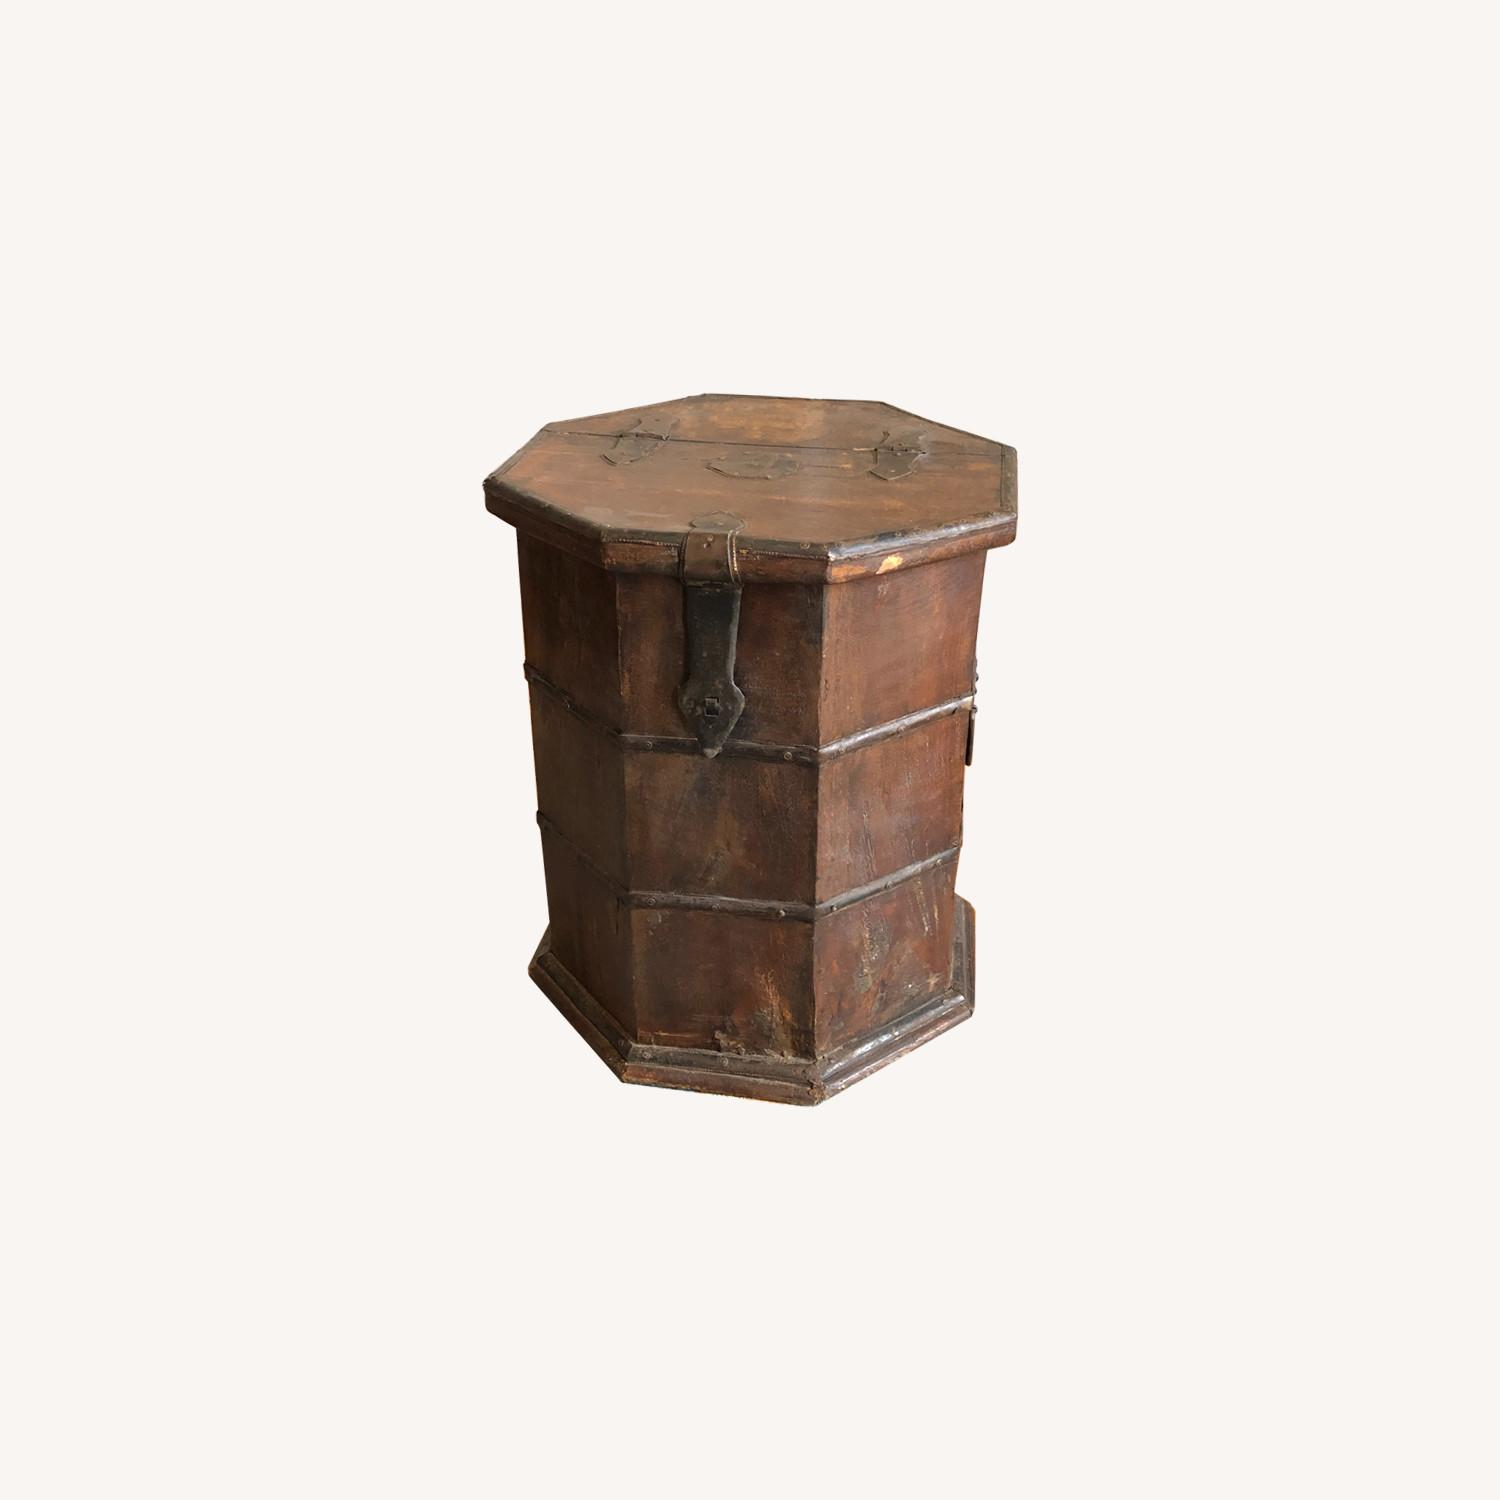 Vintage Octagonal Side Table Trunk with Storage - image-0